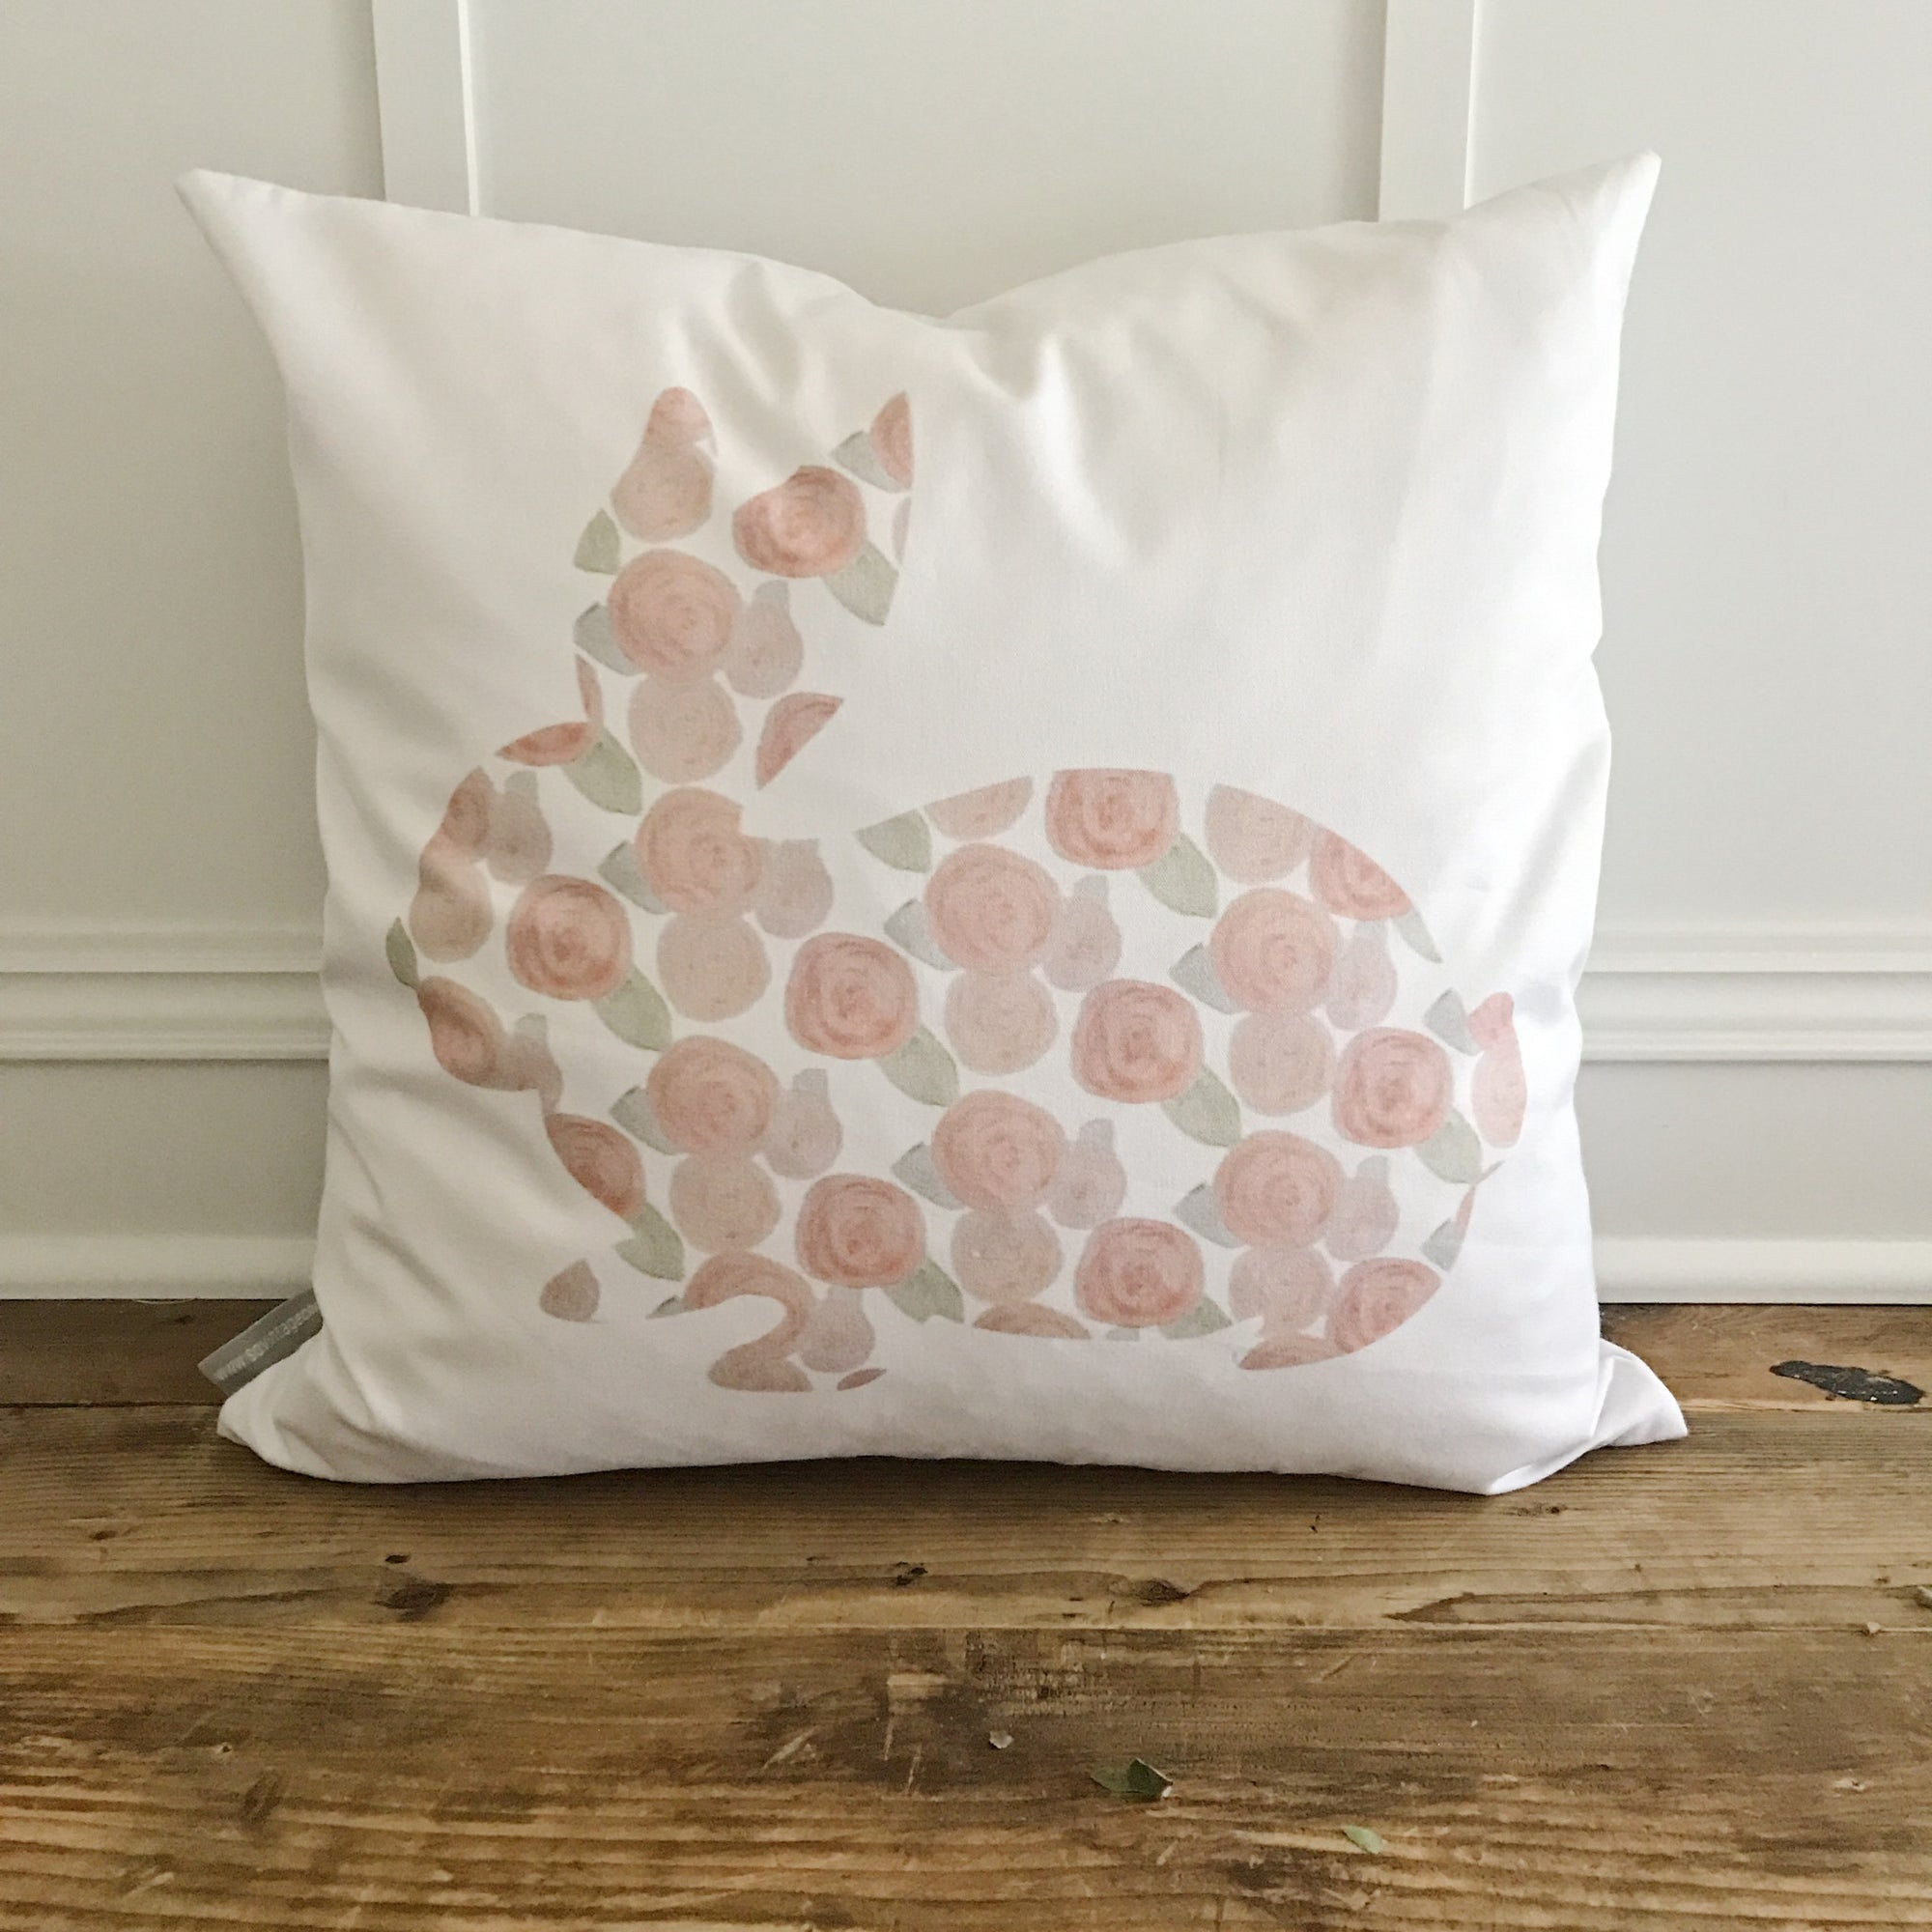 Watercolor Rose Bunny Pillow Cover - Linen and Ivory